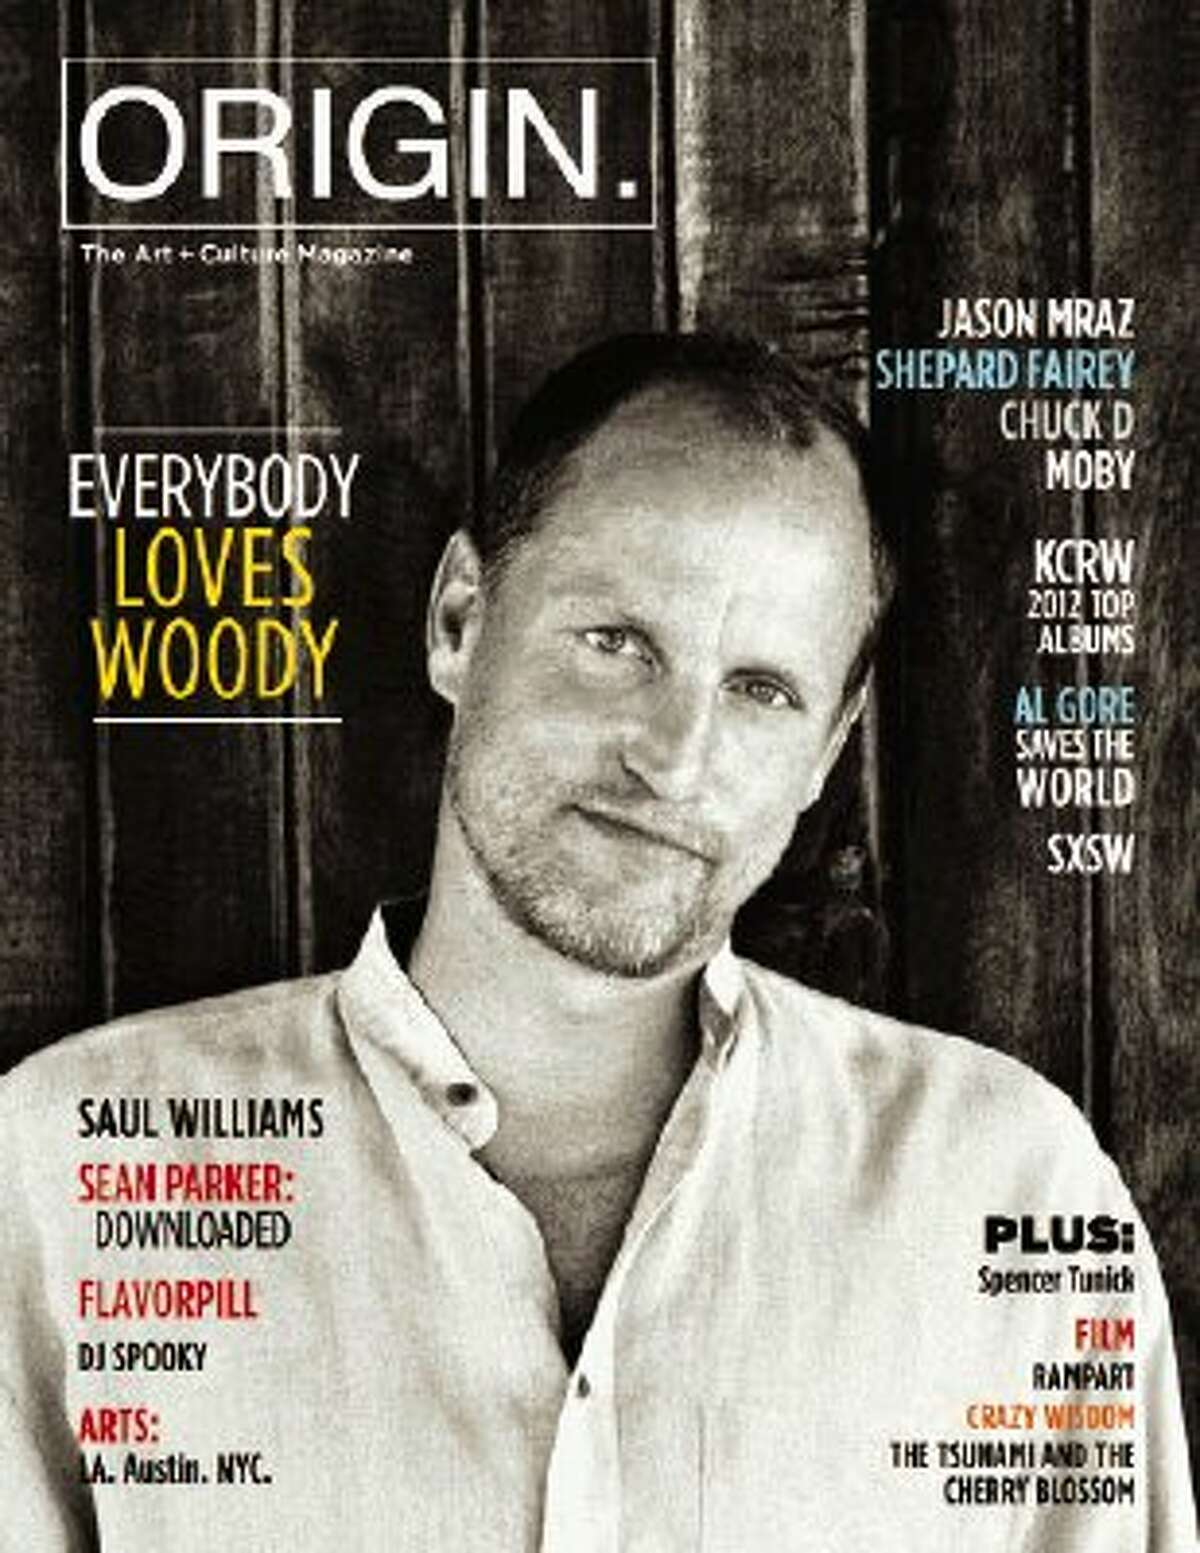 Woody Harrelson is just one of the many celebrity interview subjects who have adorned the cover of ORIGIN Magazine. Founded by Atascocita native Maranda Pleasant, ORIGIN is an art/yoga publication whose distribution has expanded to a national level.